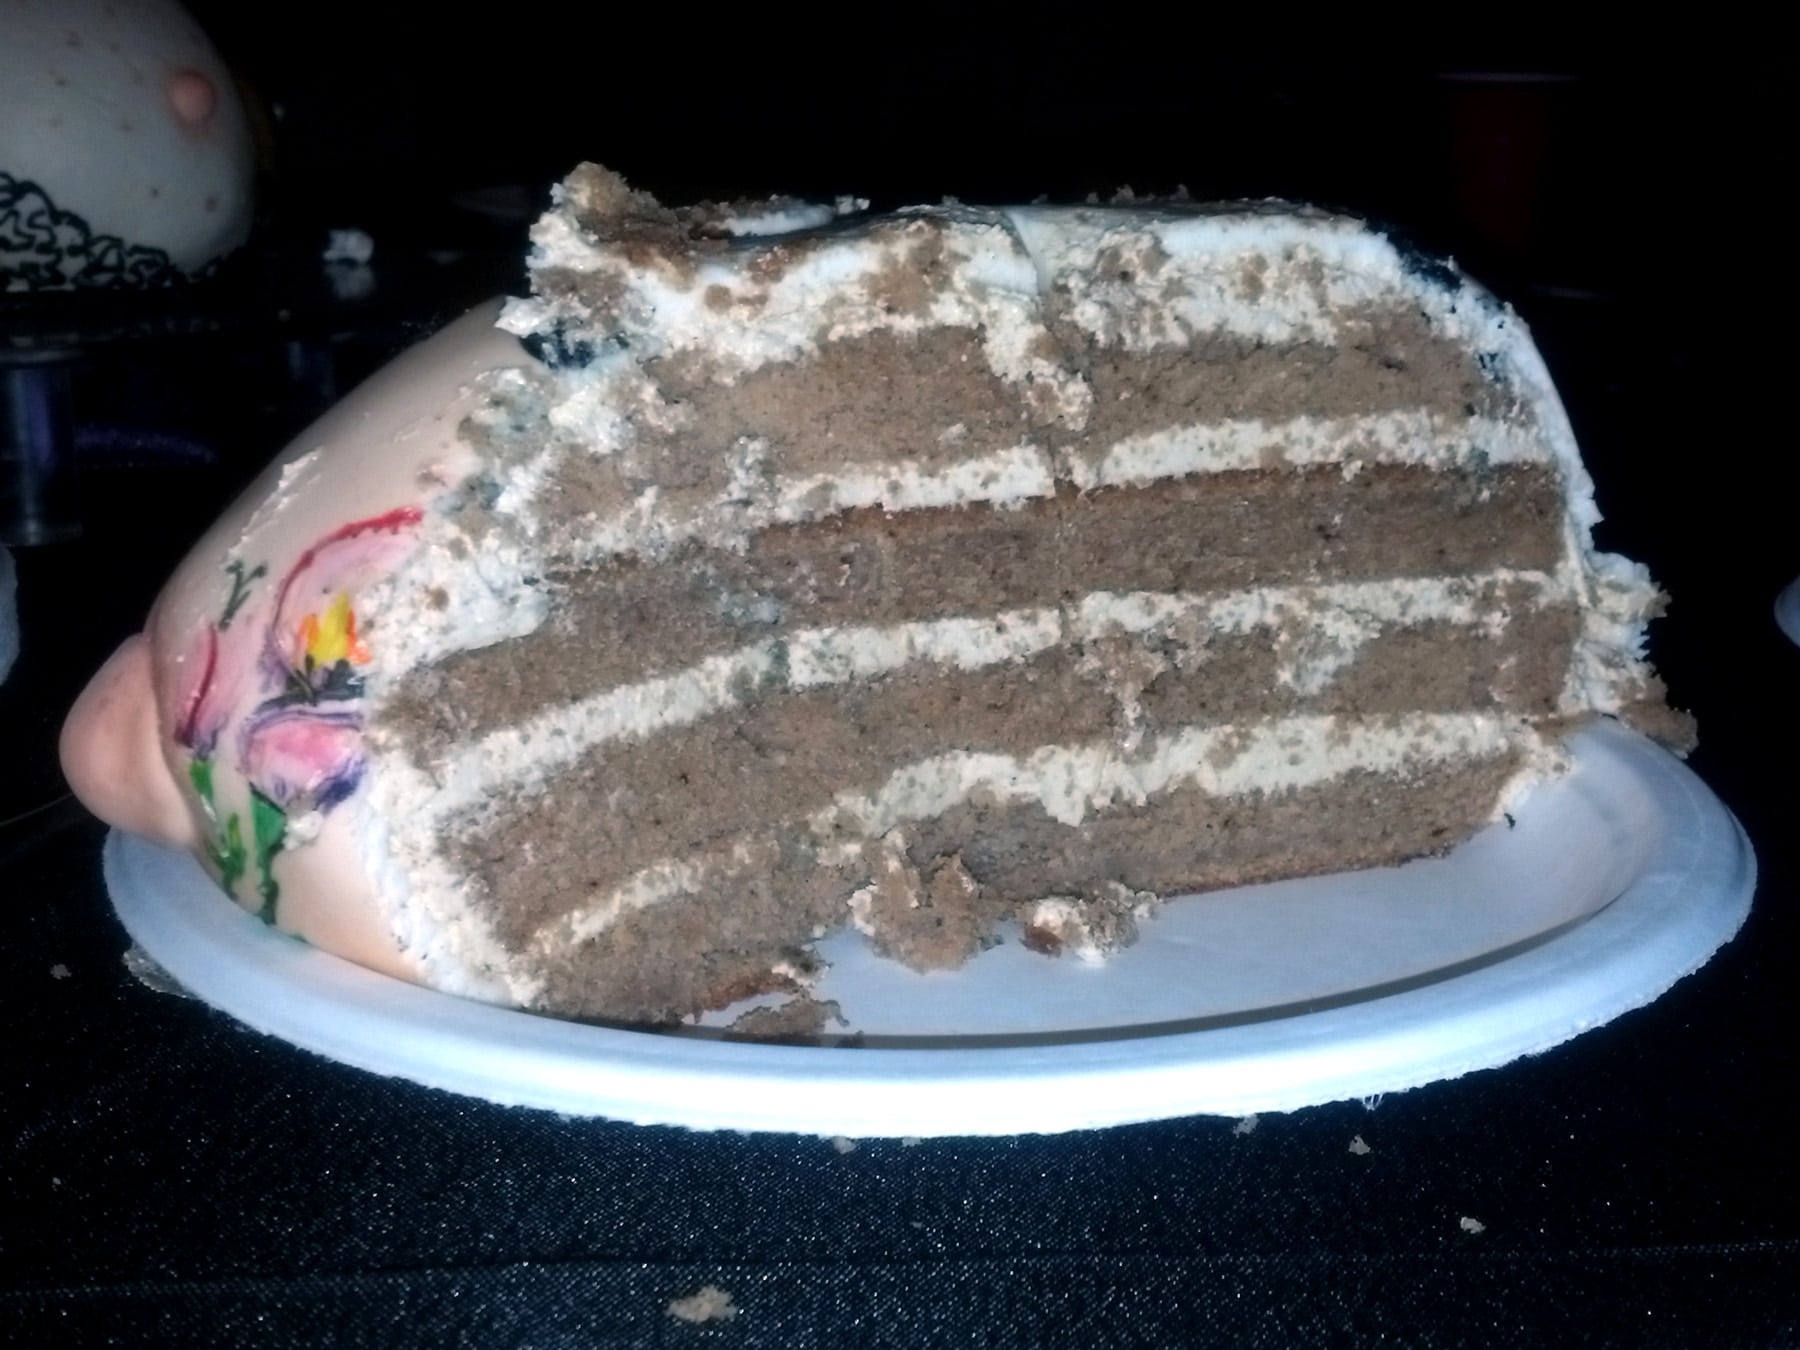 Cross section of the cake, 4 layers of chai cake, with frosting.